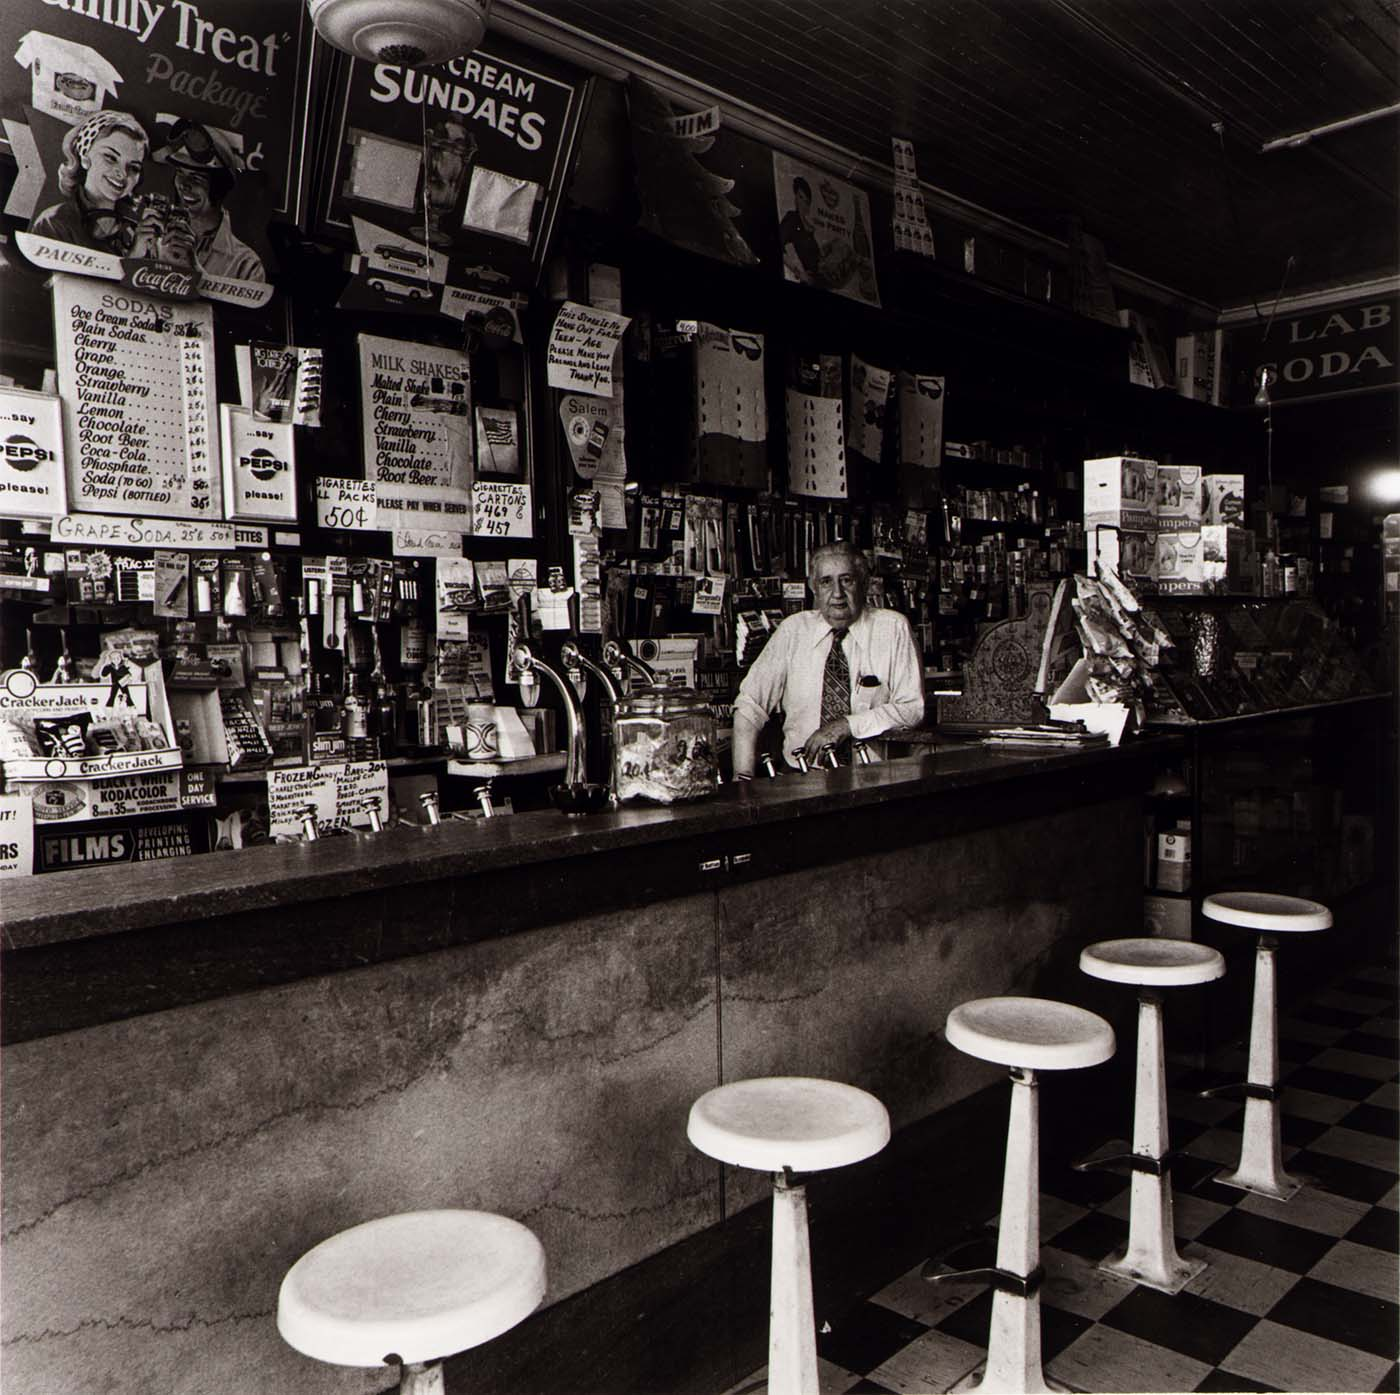 Help Identify This Ice Cream and Soda Shop From 1975